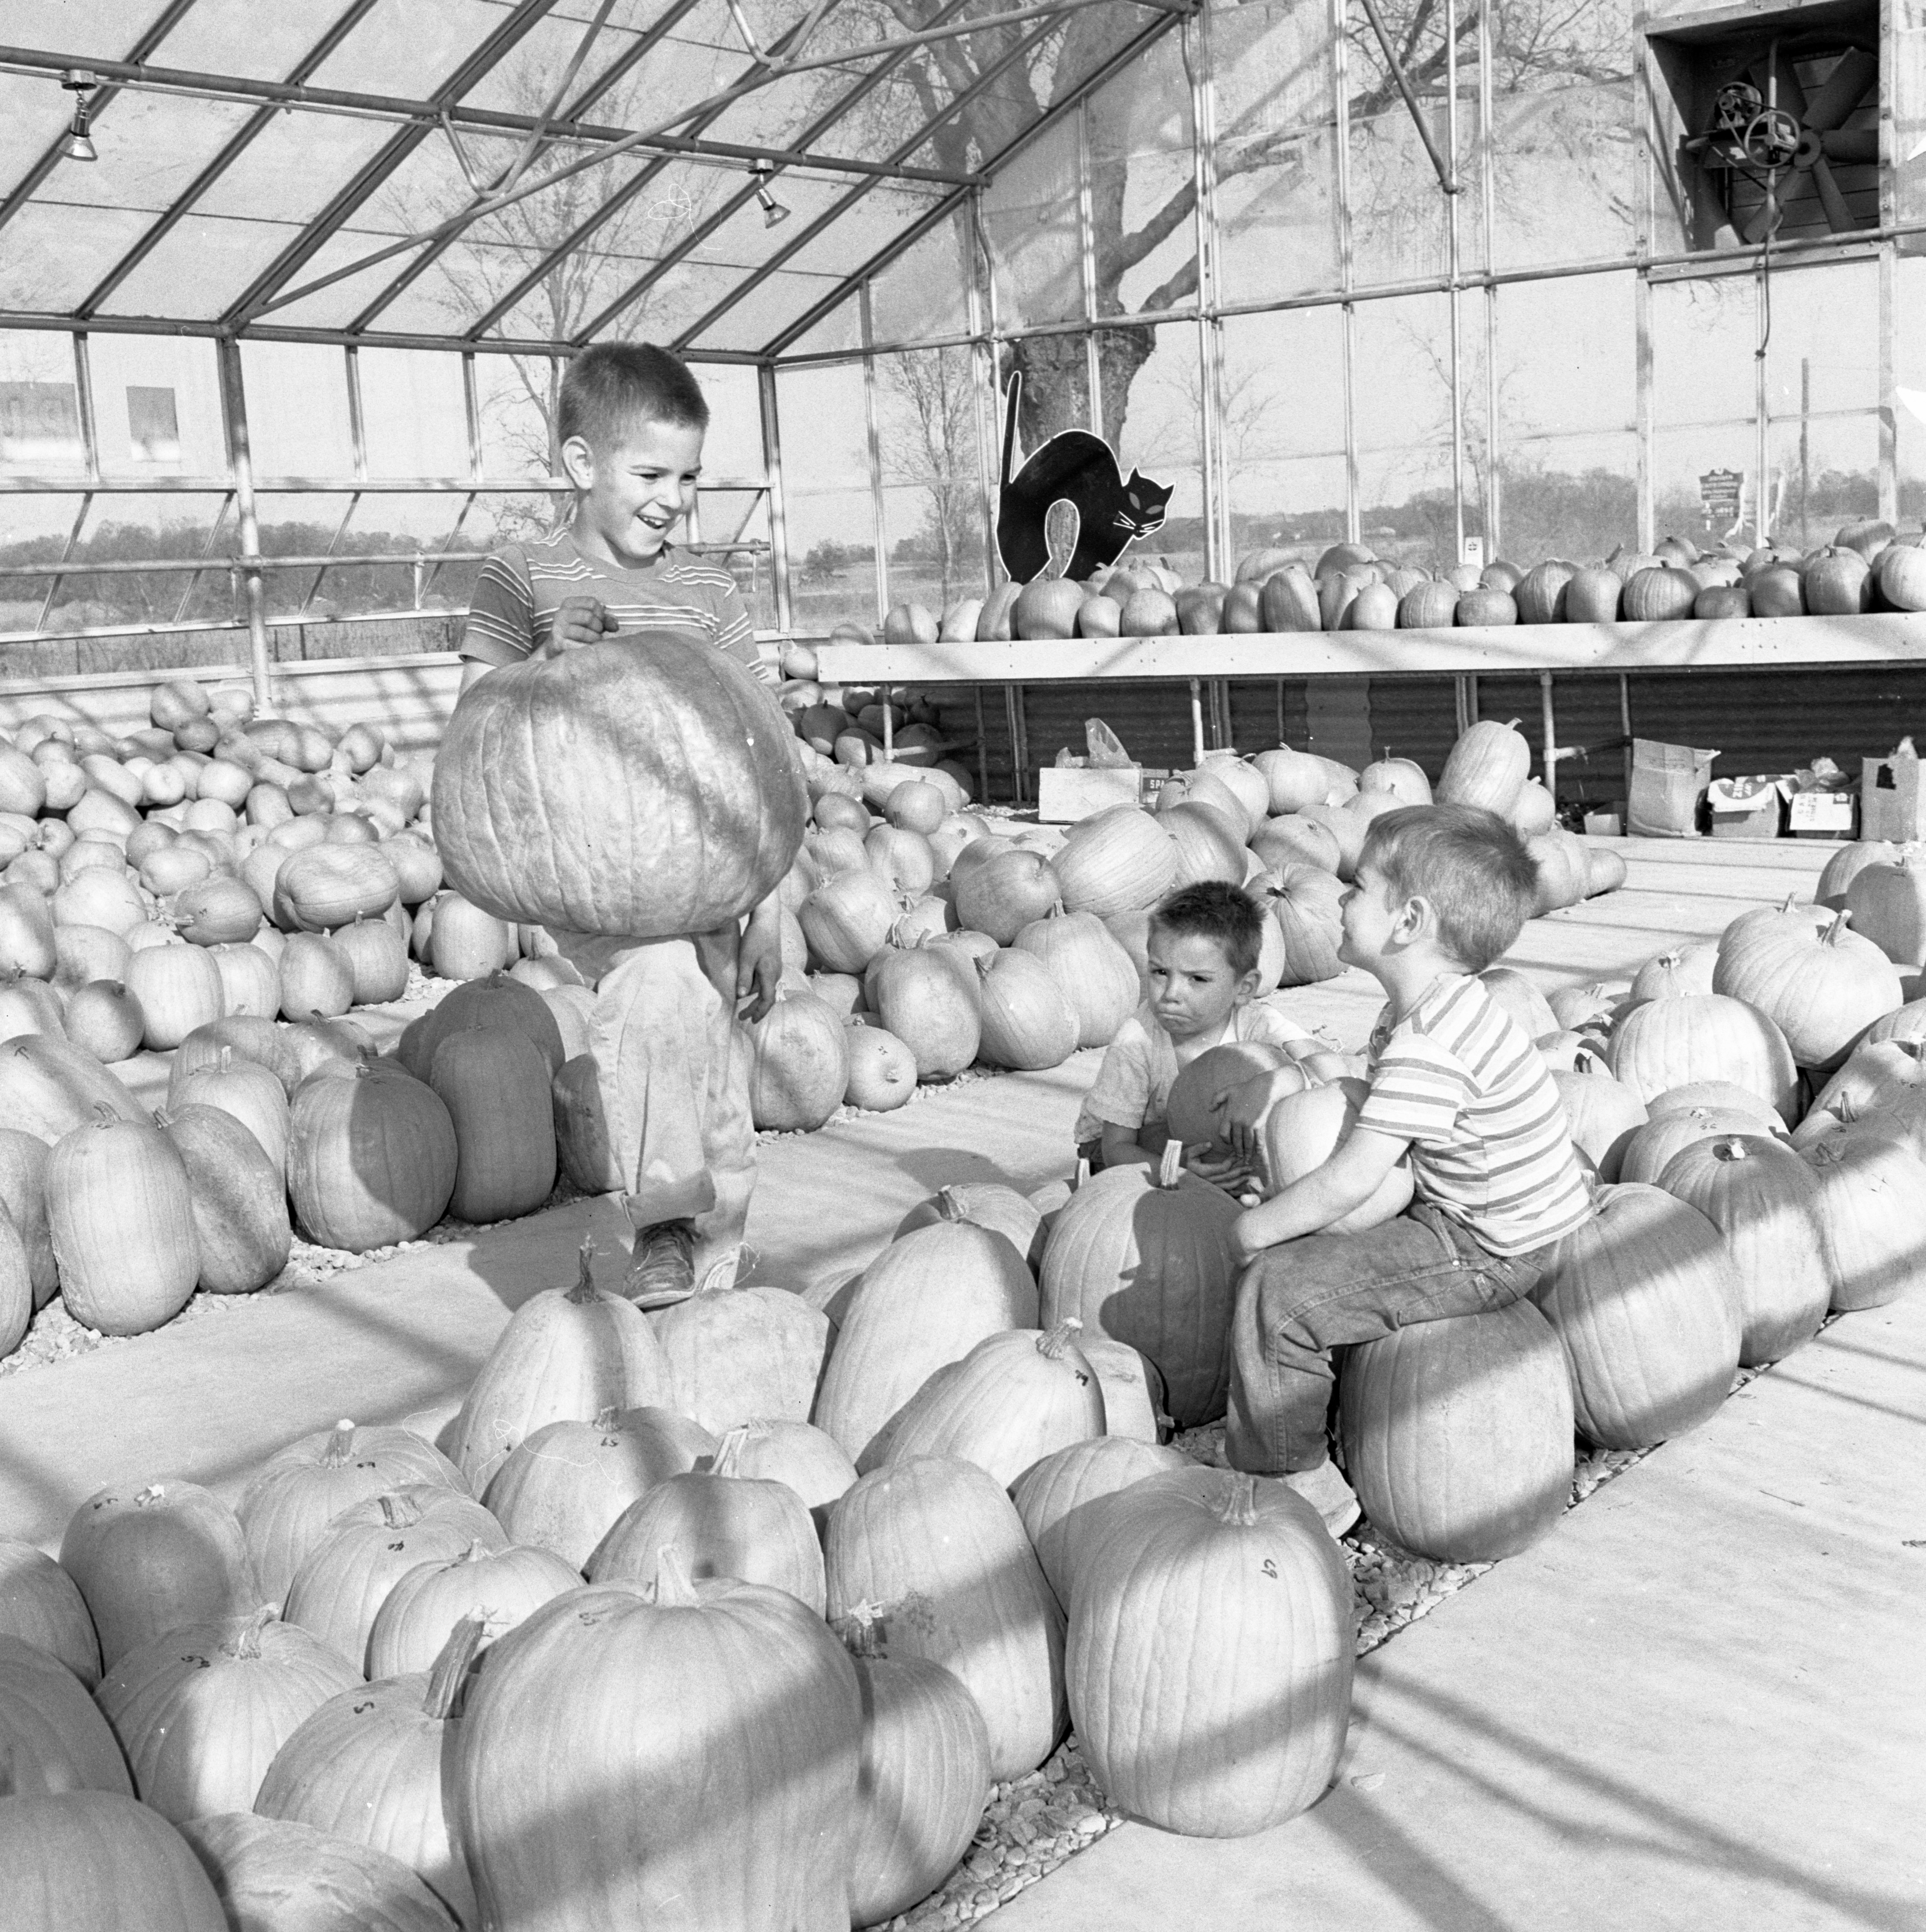 Children Shopping For Halloween Pumpkins, October 1963 image